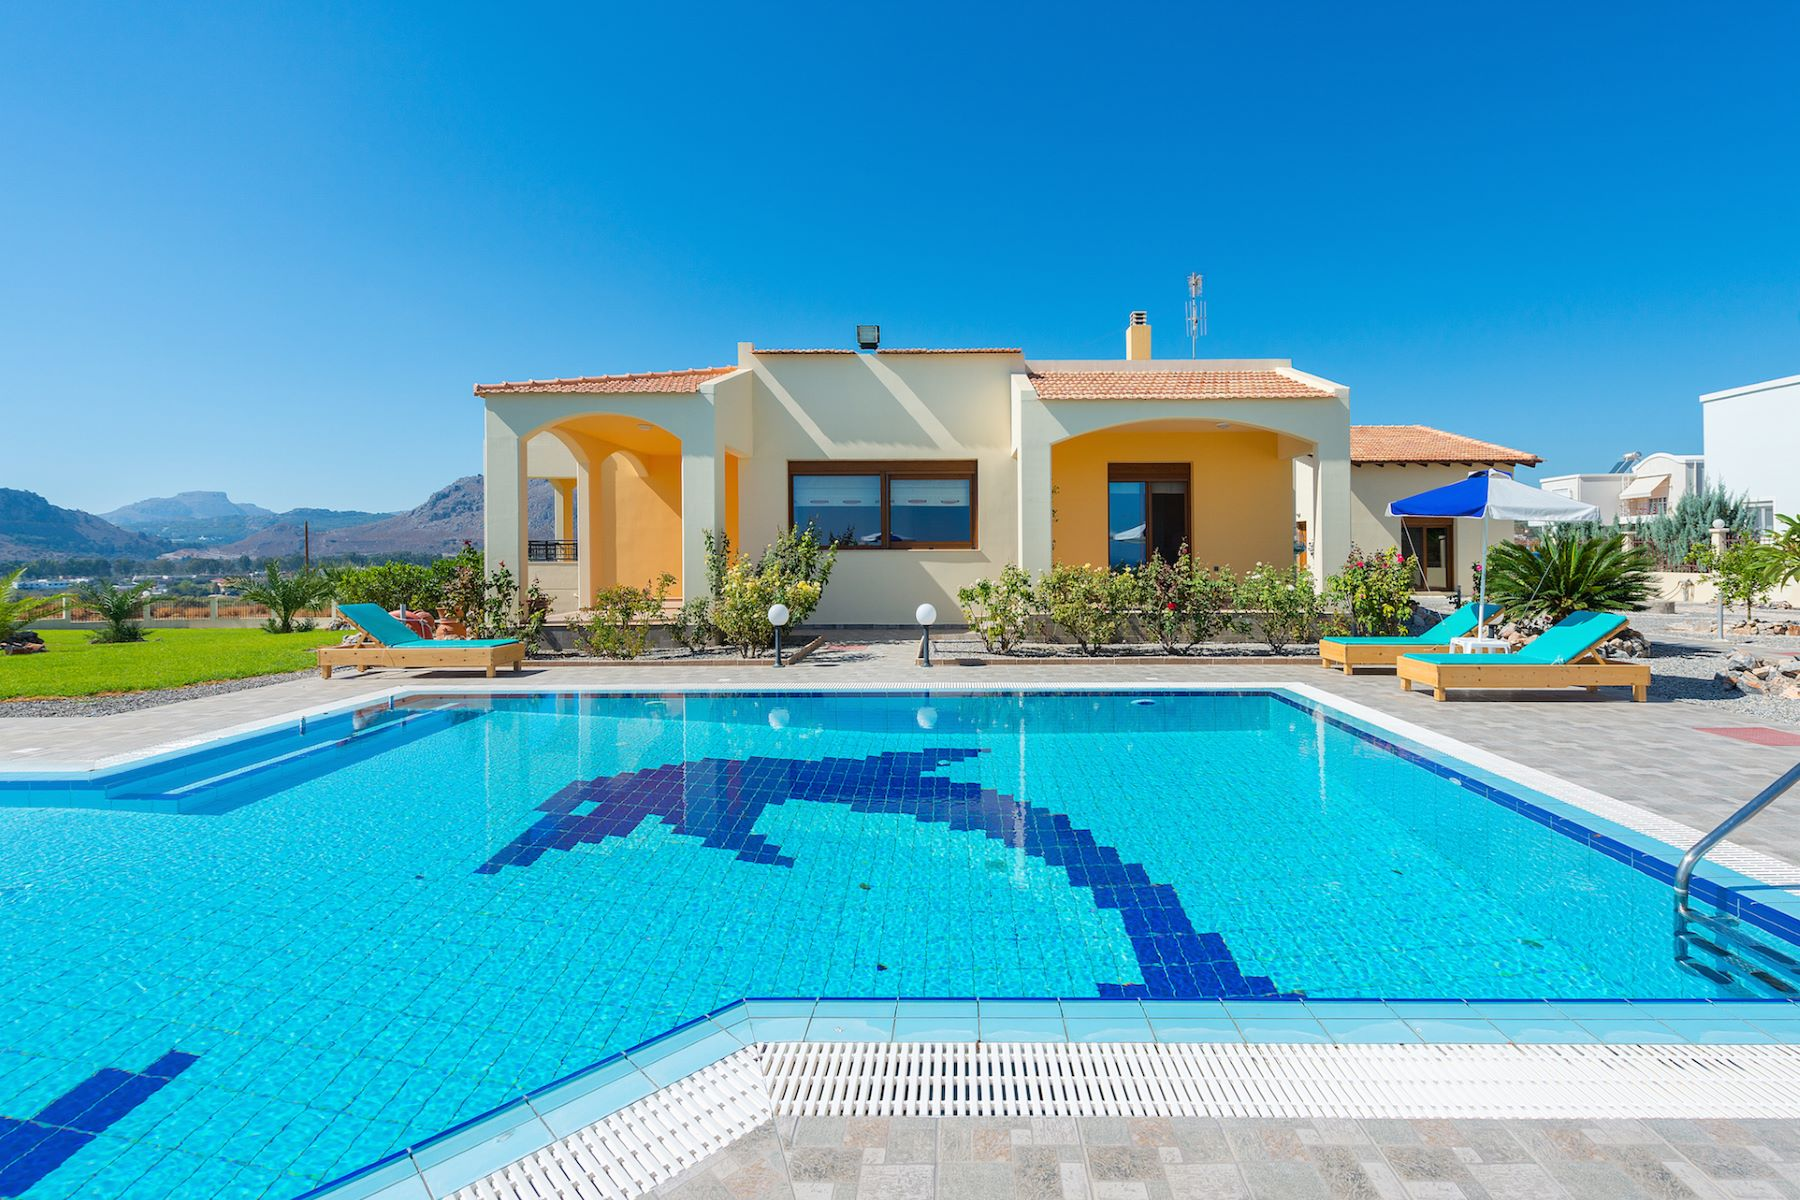 Single Family Home for Sale at Luxurious Landscape Rhodes, Southern Aegean, Greece